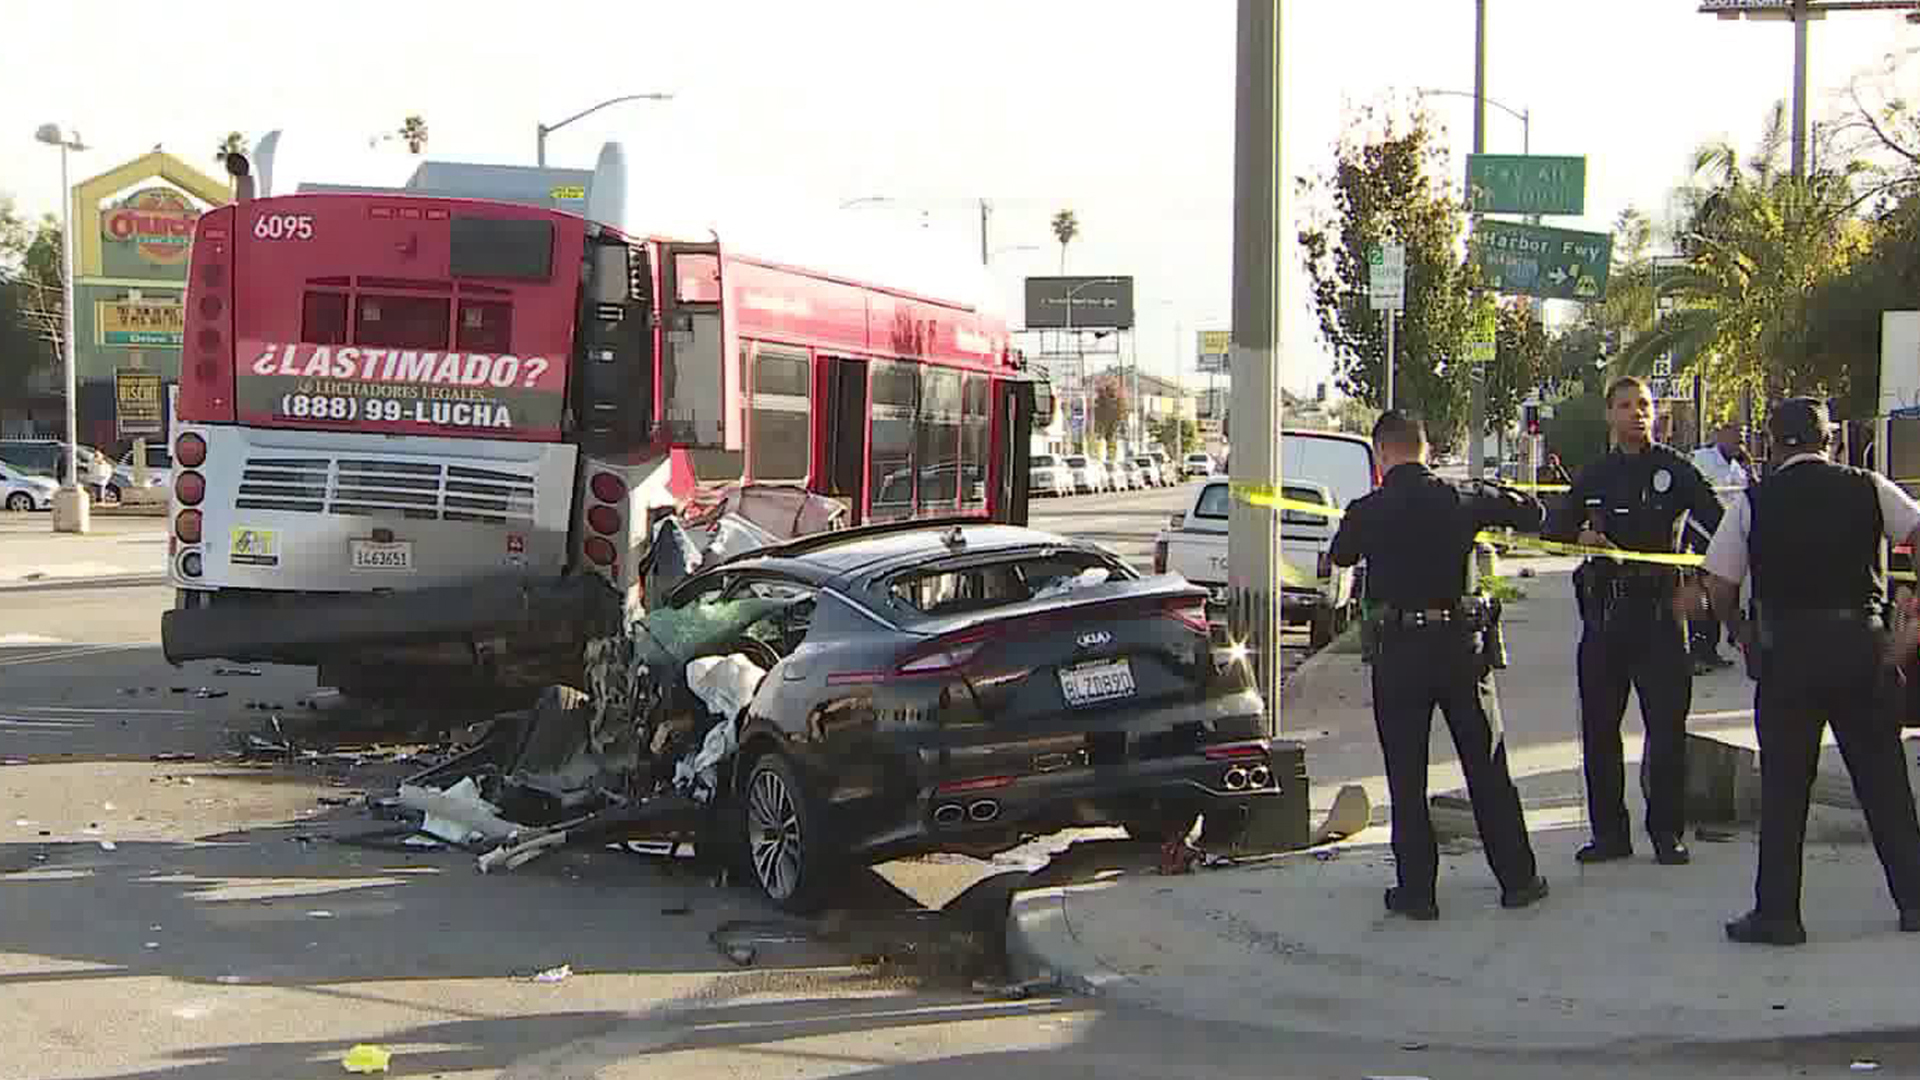 Los Angeles police investigate the scene in Florence where a car collided with a passenger bus on Dec. 30, 2019. (Credit: KTLA)